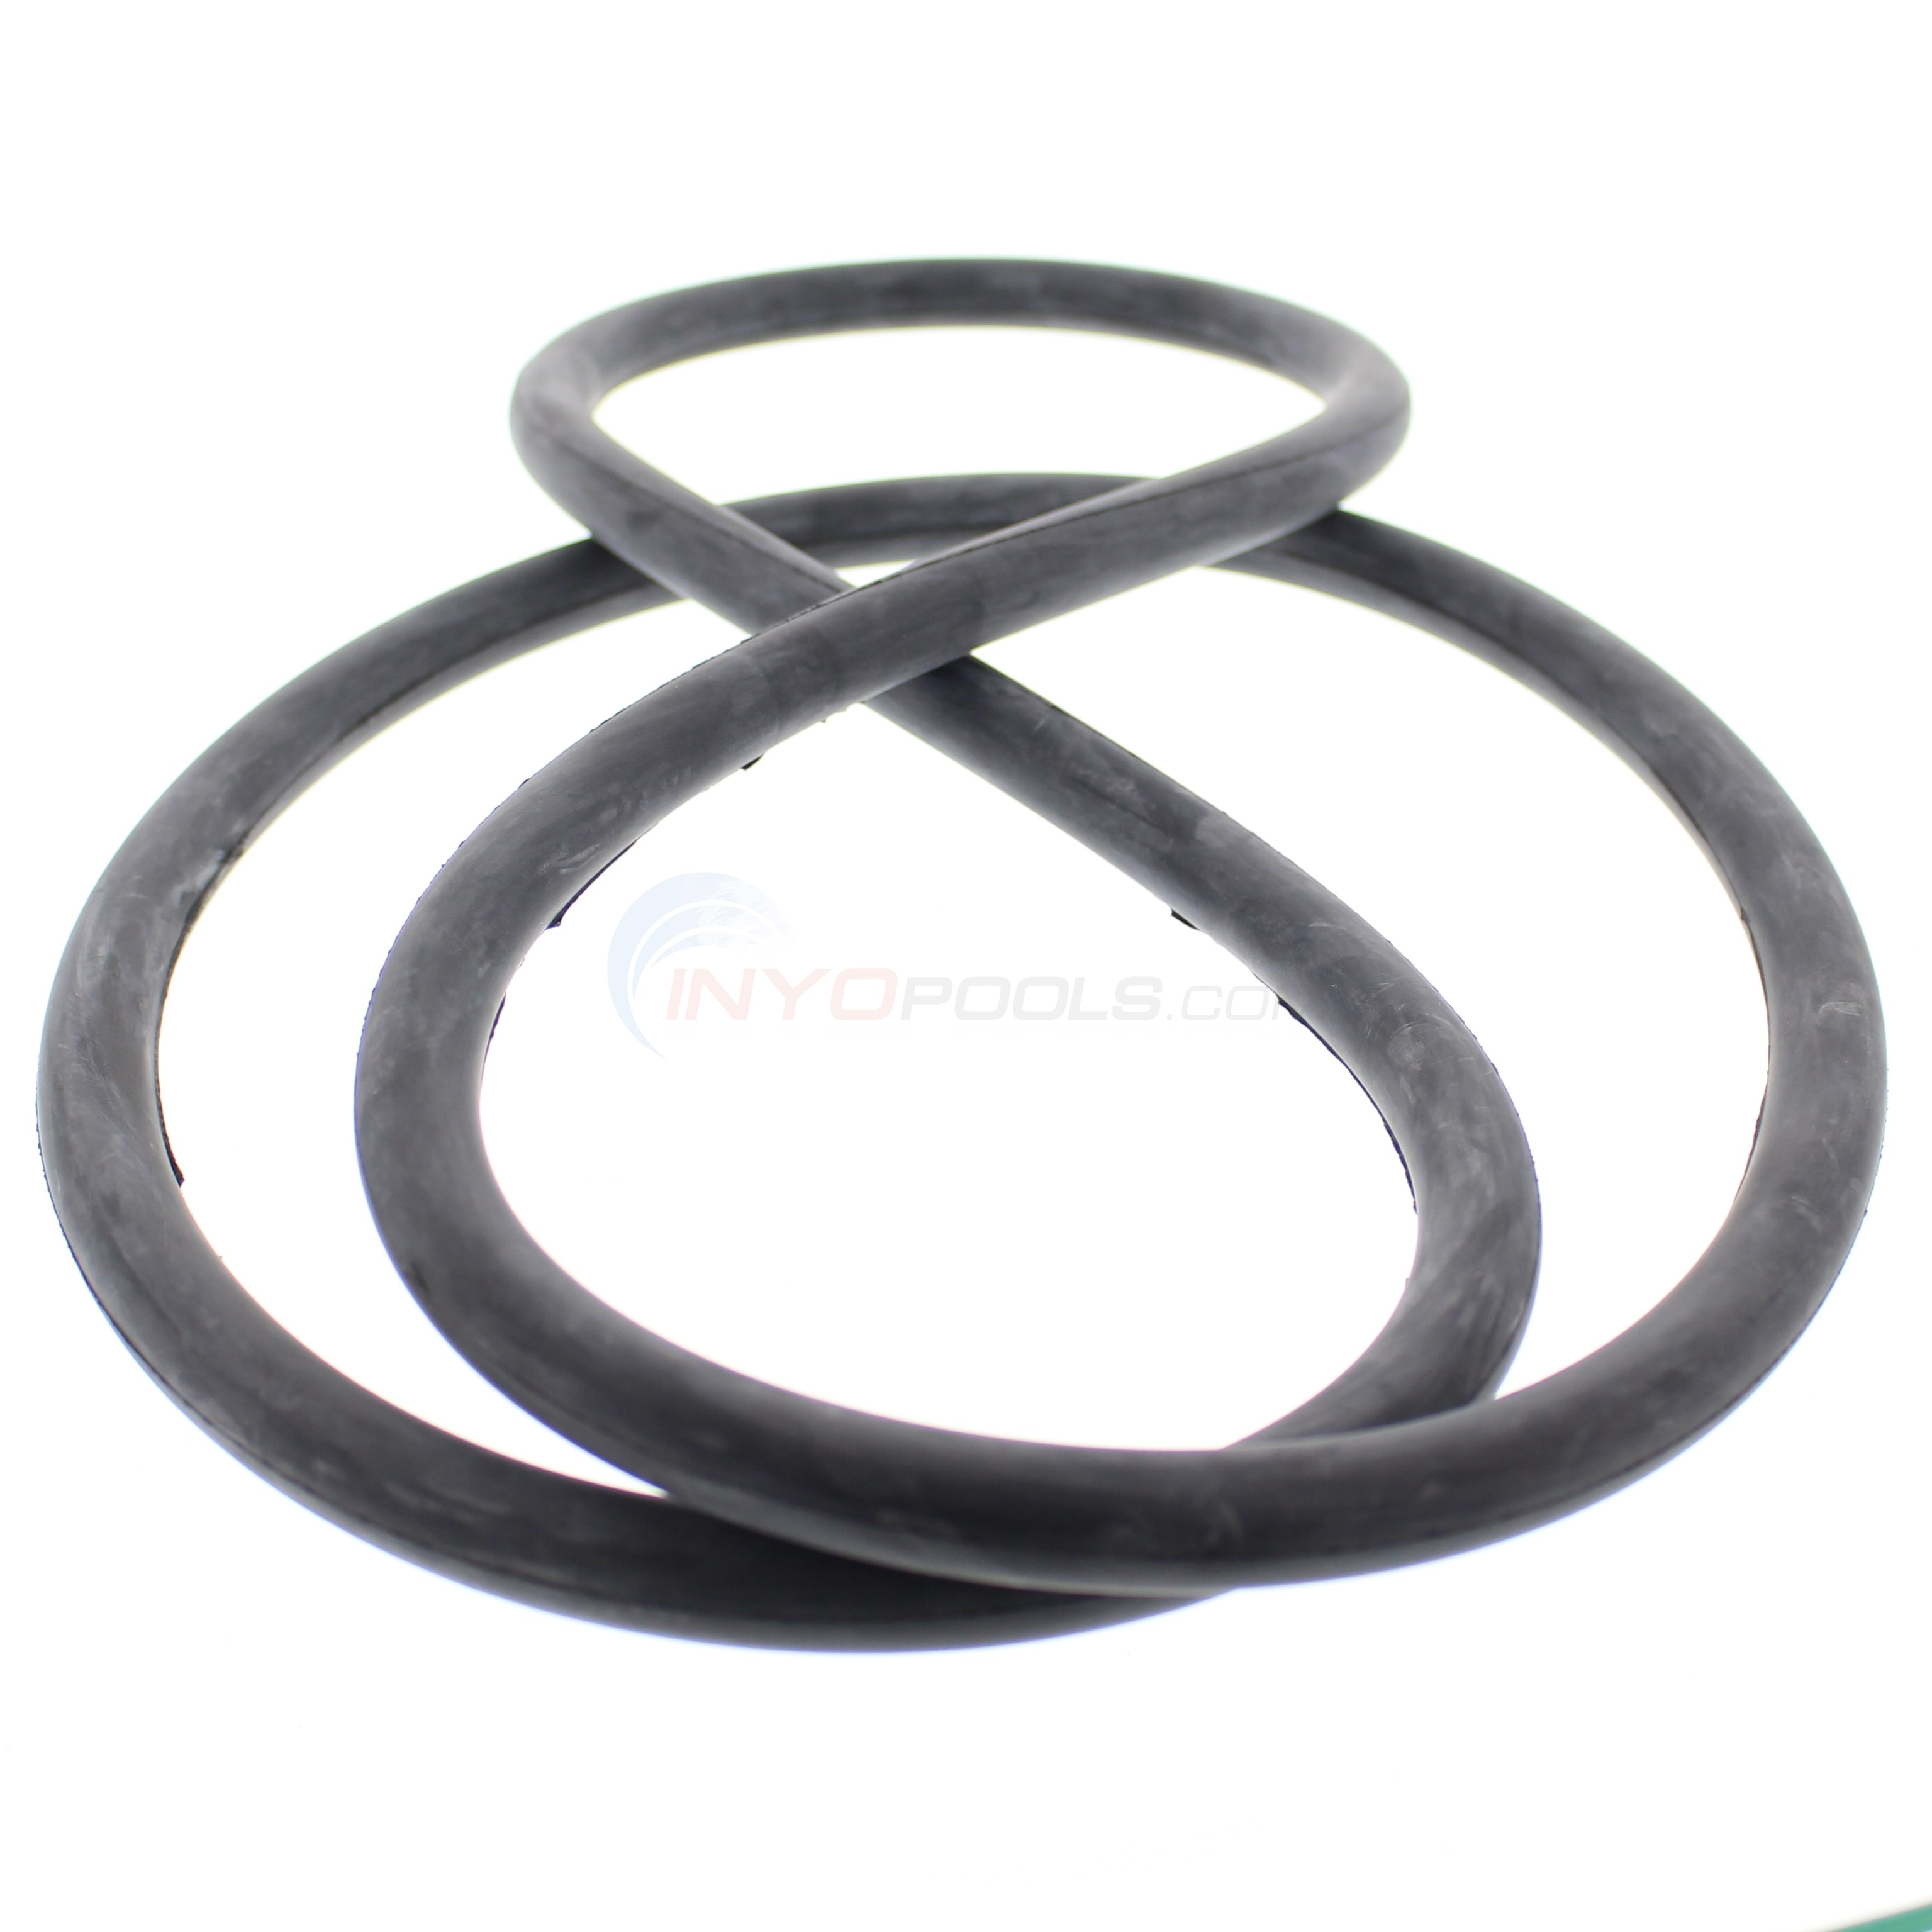 Cord Ring, S7D75